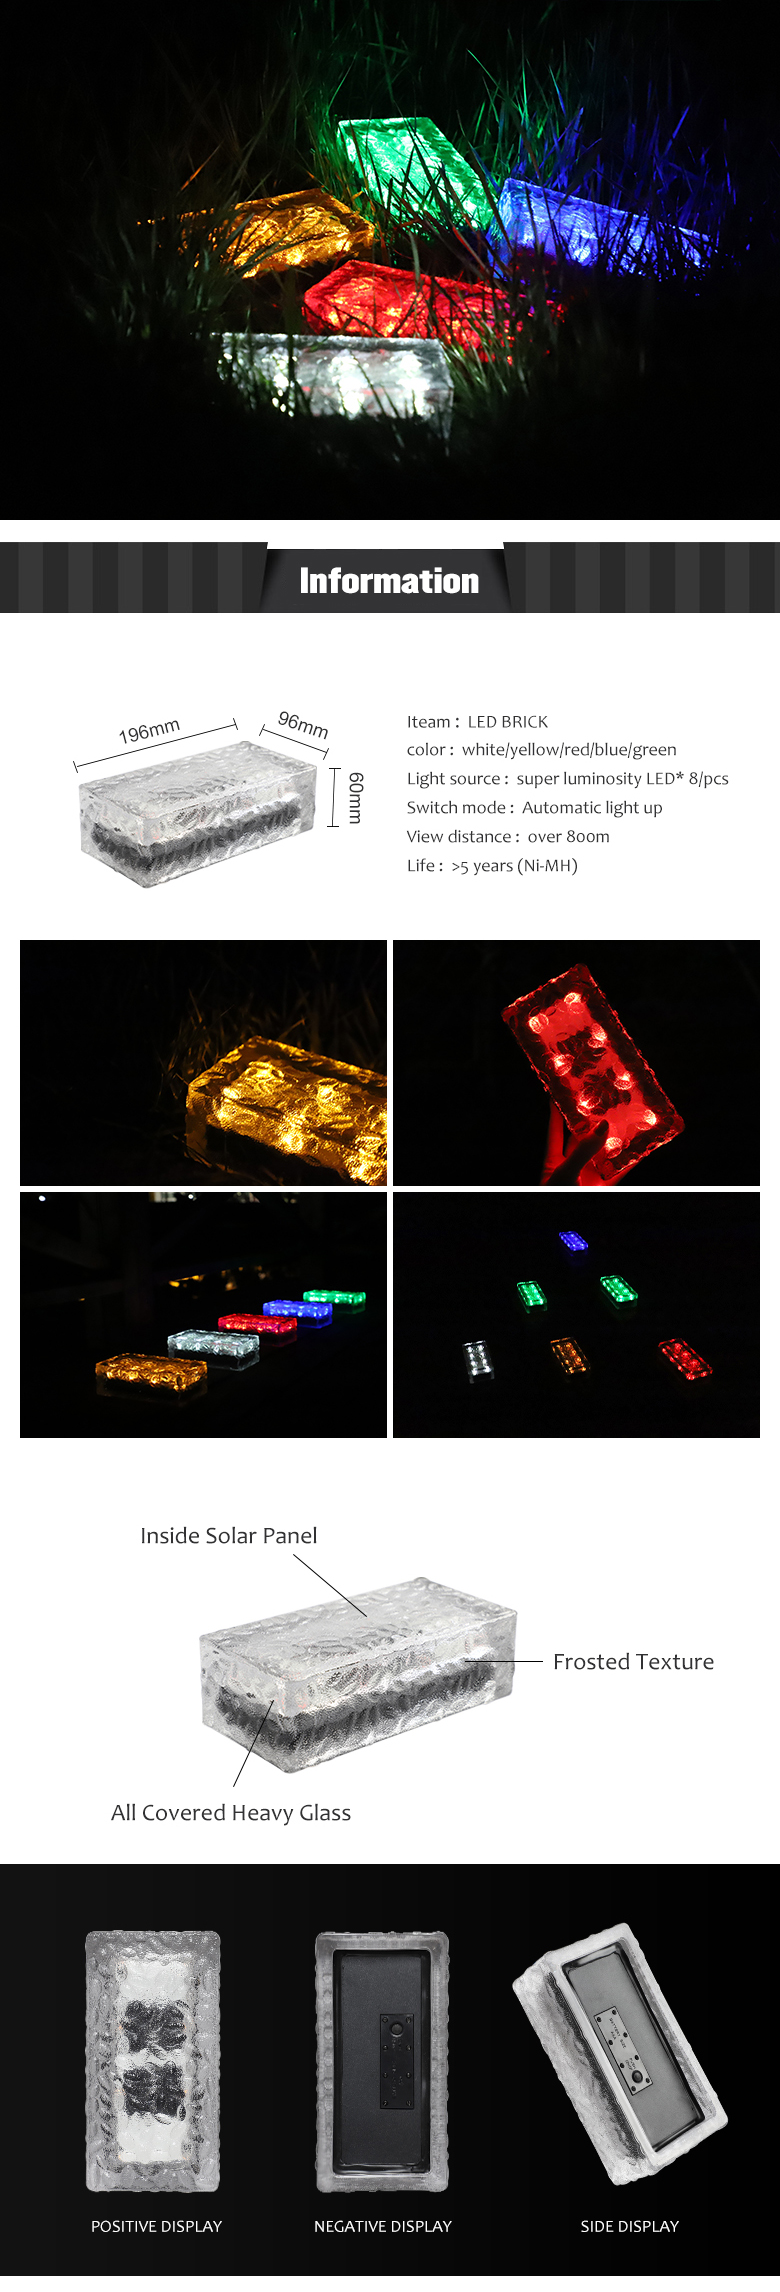 update price of glass block LED glass paver brick with light for garden decoration